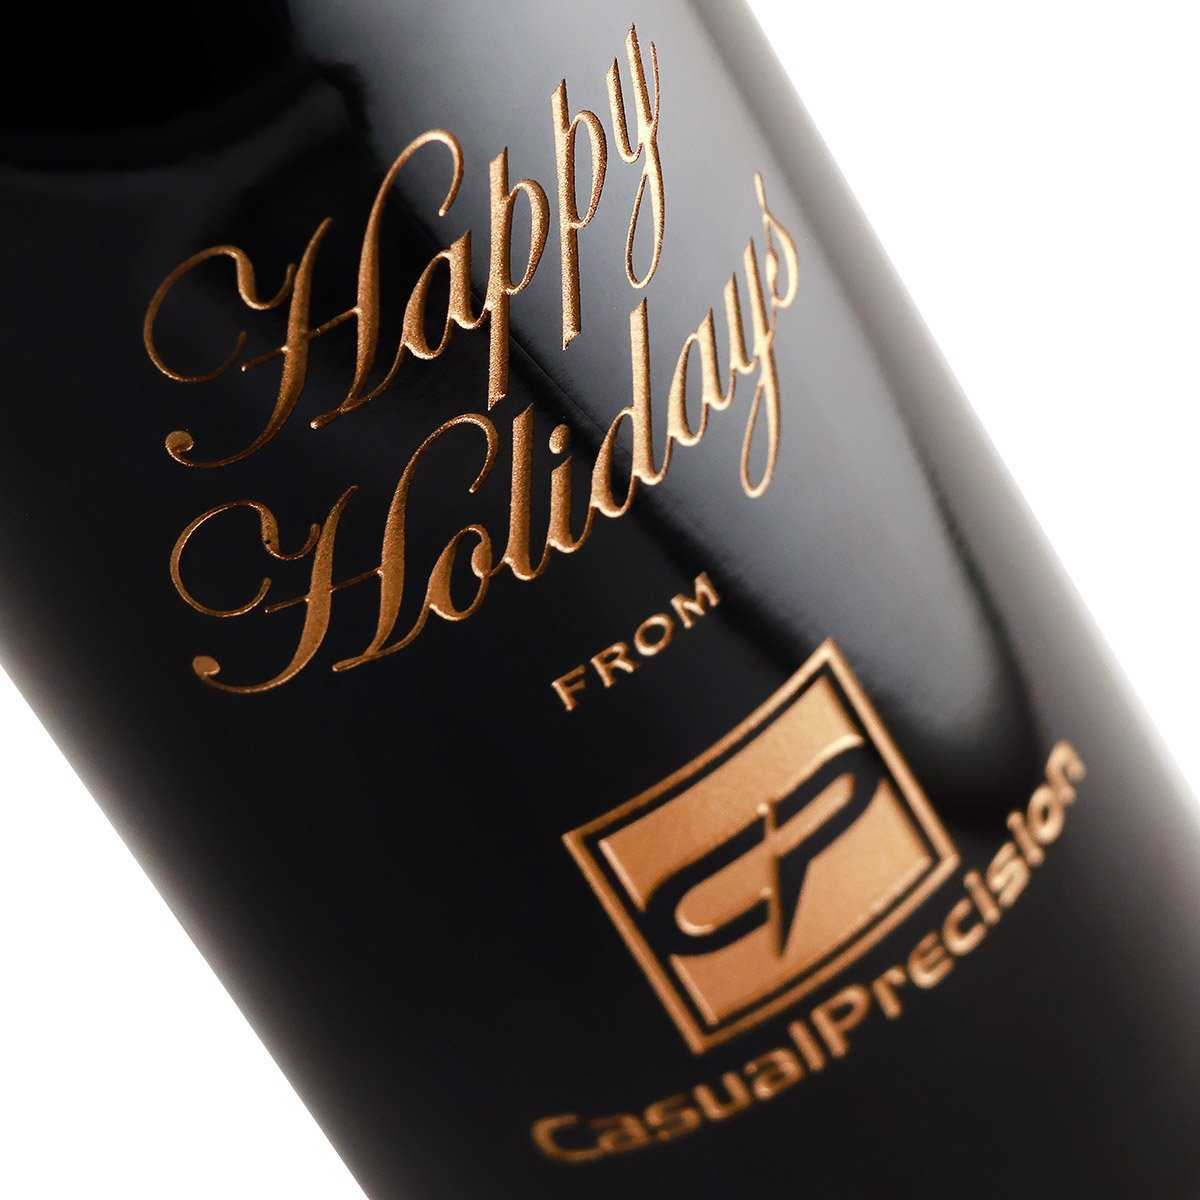 etched corporate gift red wine bottle engraved for holiday gifts